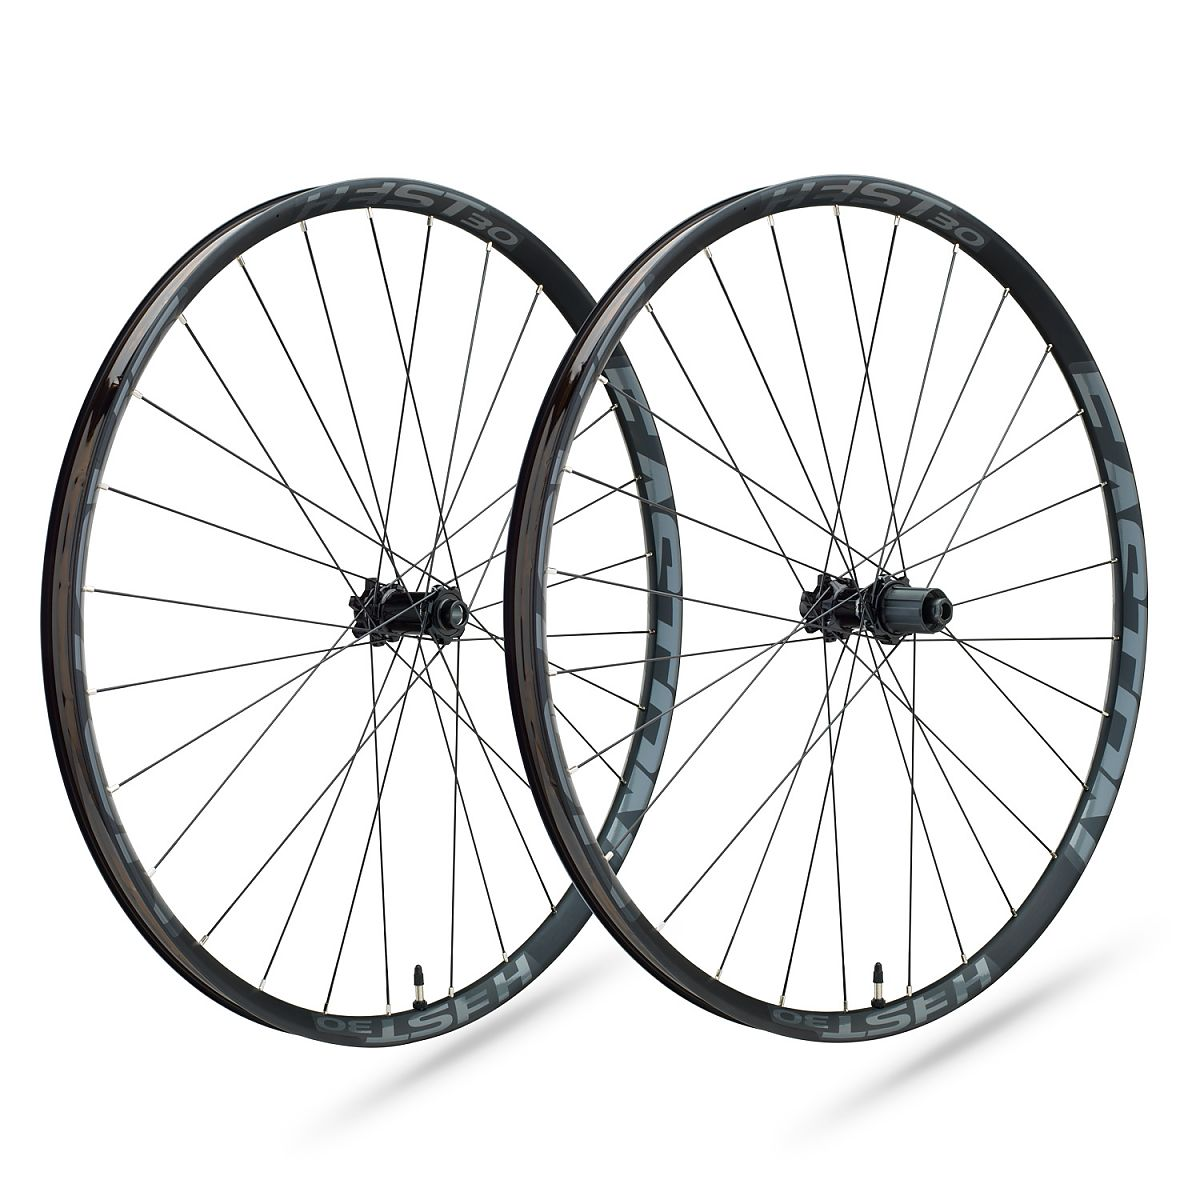 Easton offers Heist mountain bike wheels in three widths